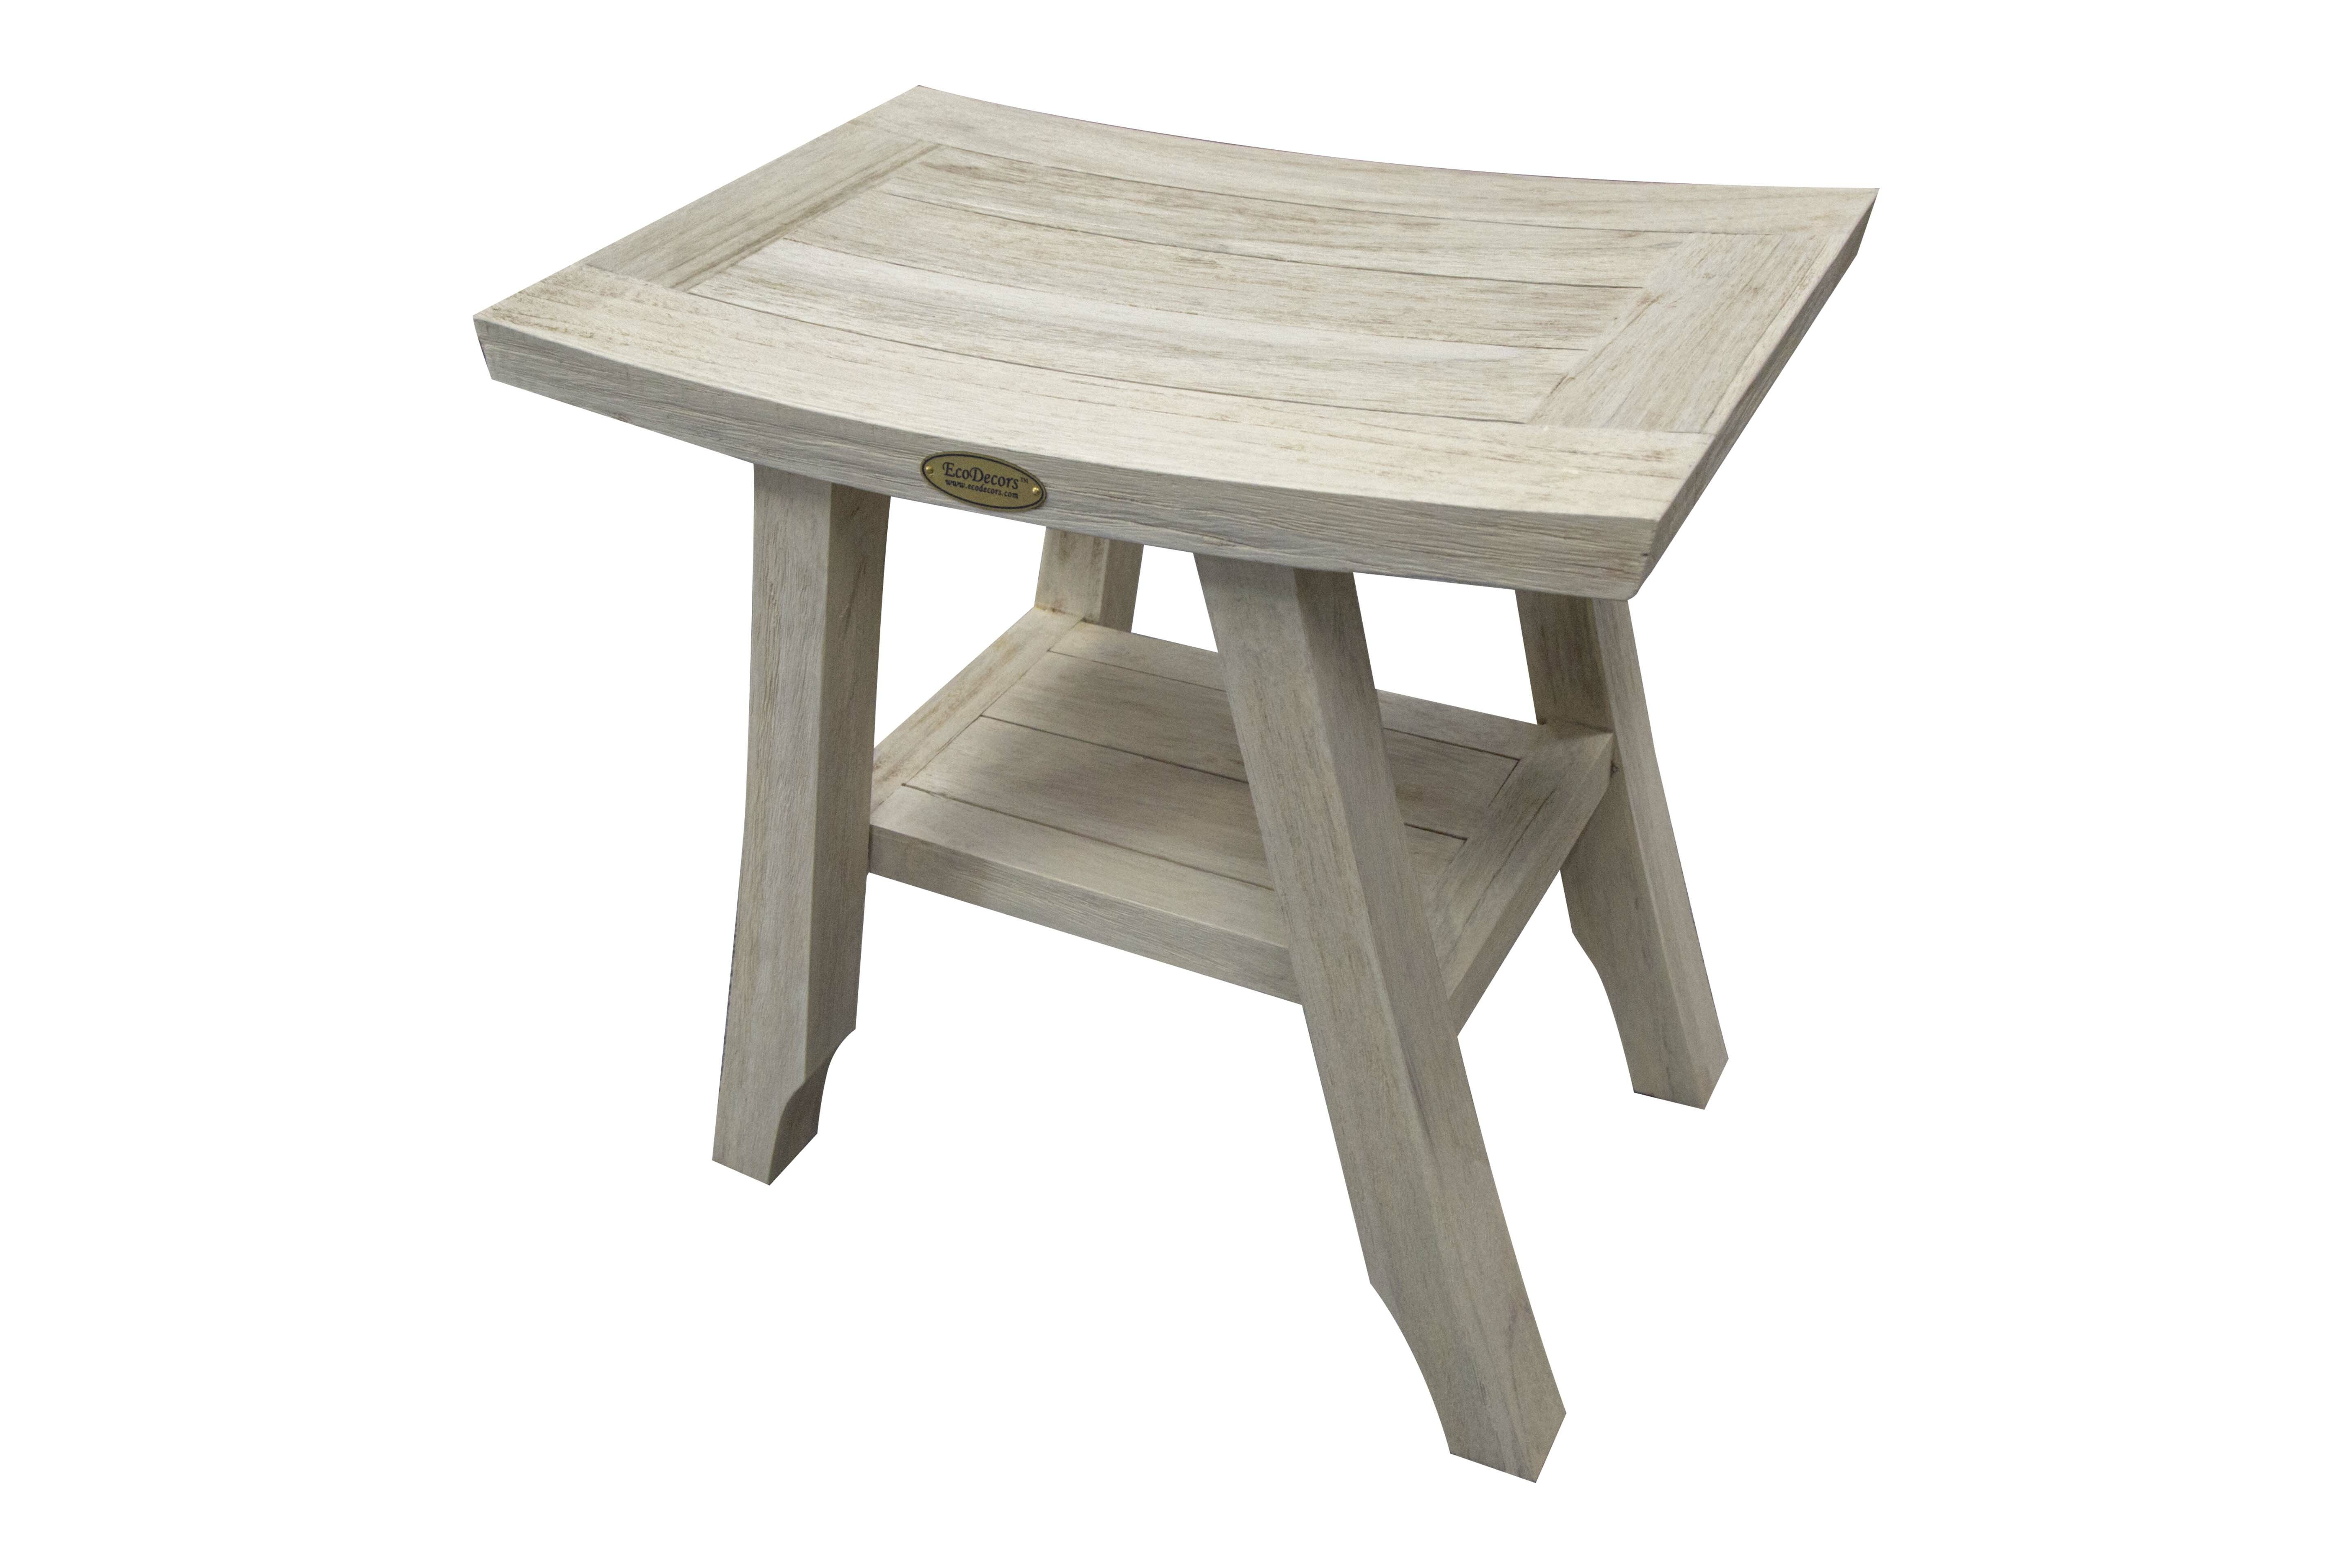 Superb Satori Coastal Vogue 18 Teak Shower Bench With Shelf Gmtry Best Dining Table And Chair Ideas Images Gmtryco